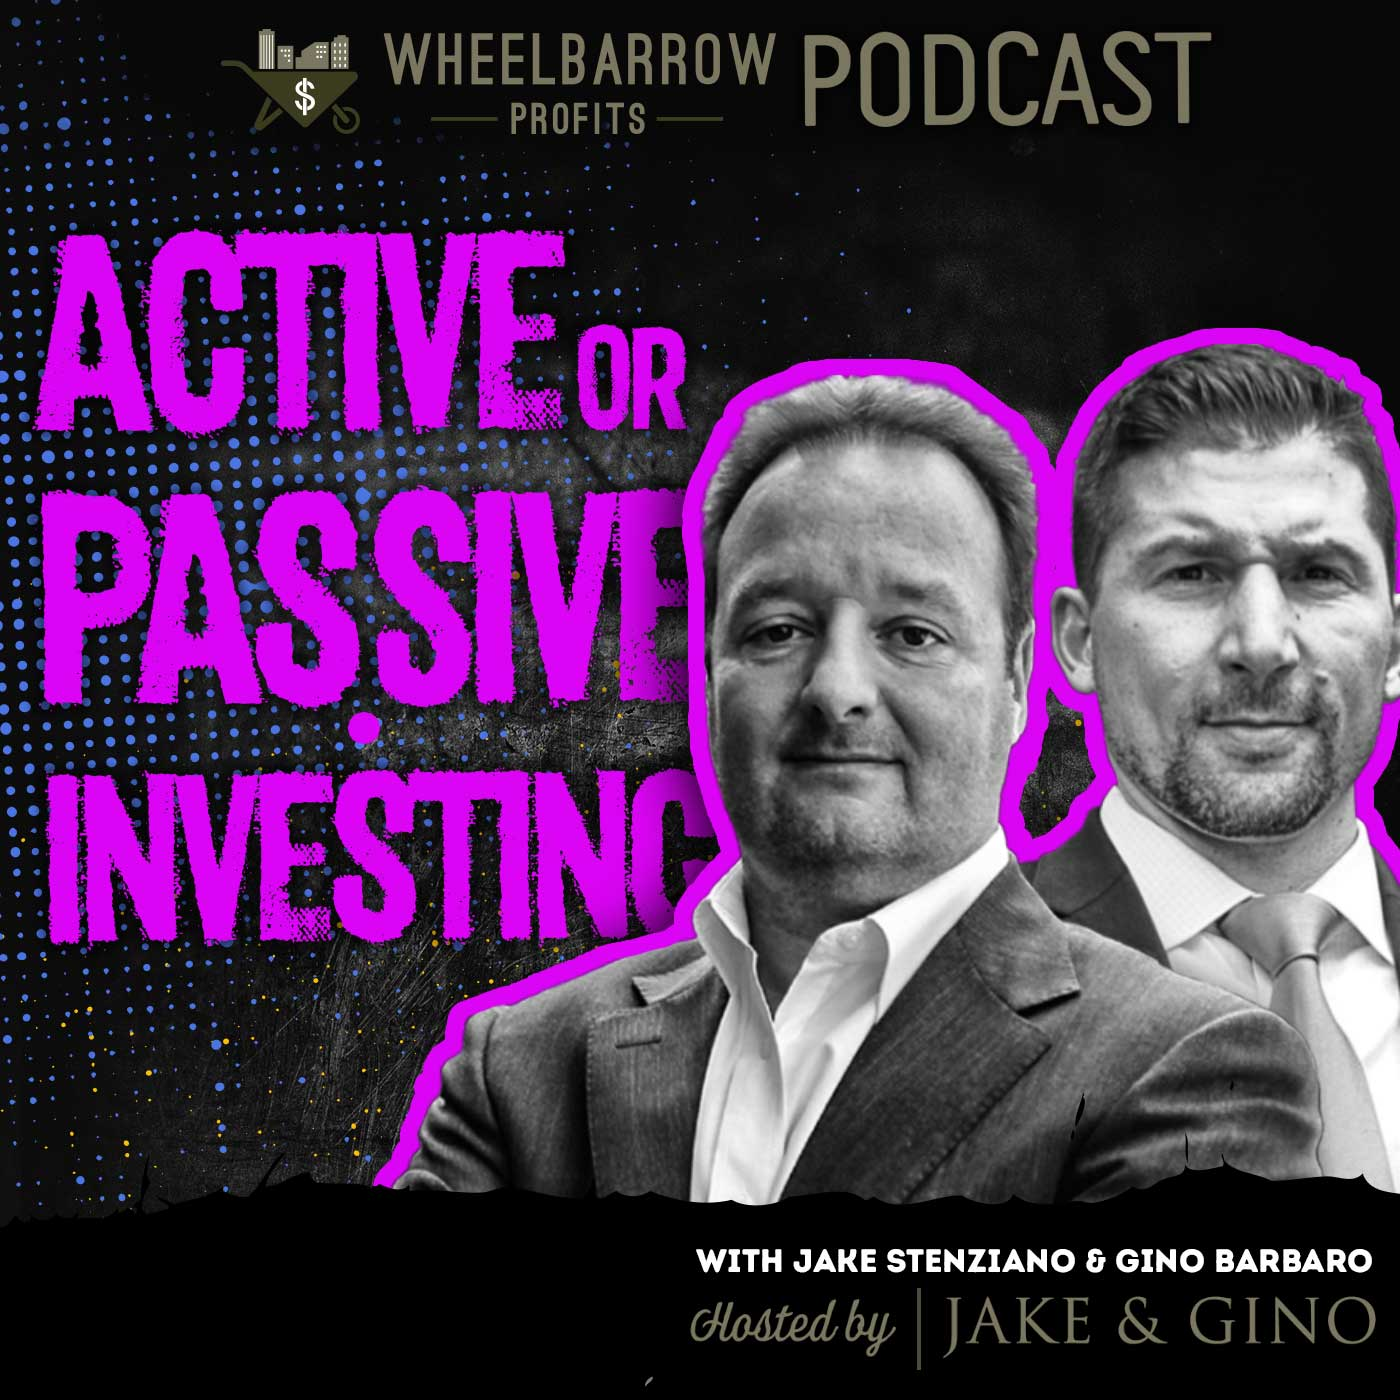 WBP - Active or Passive Investing with Jake & Gino